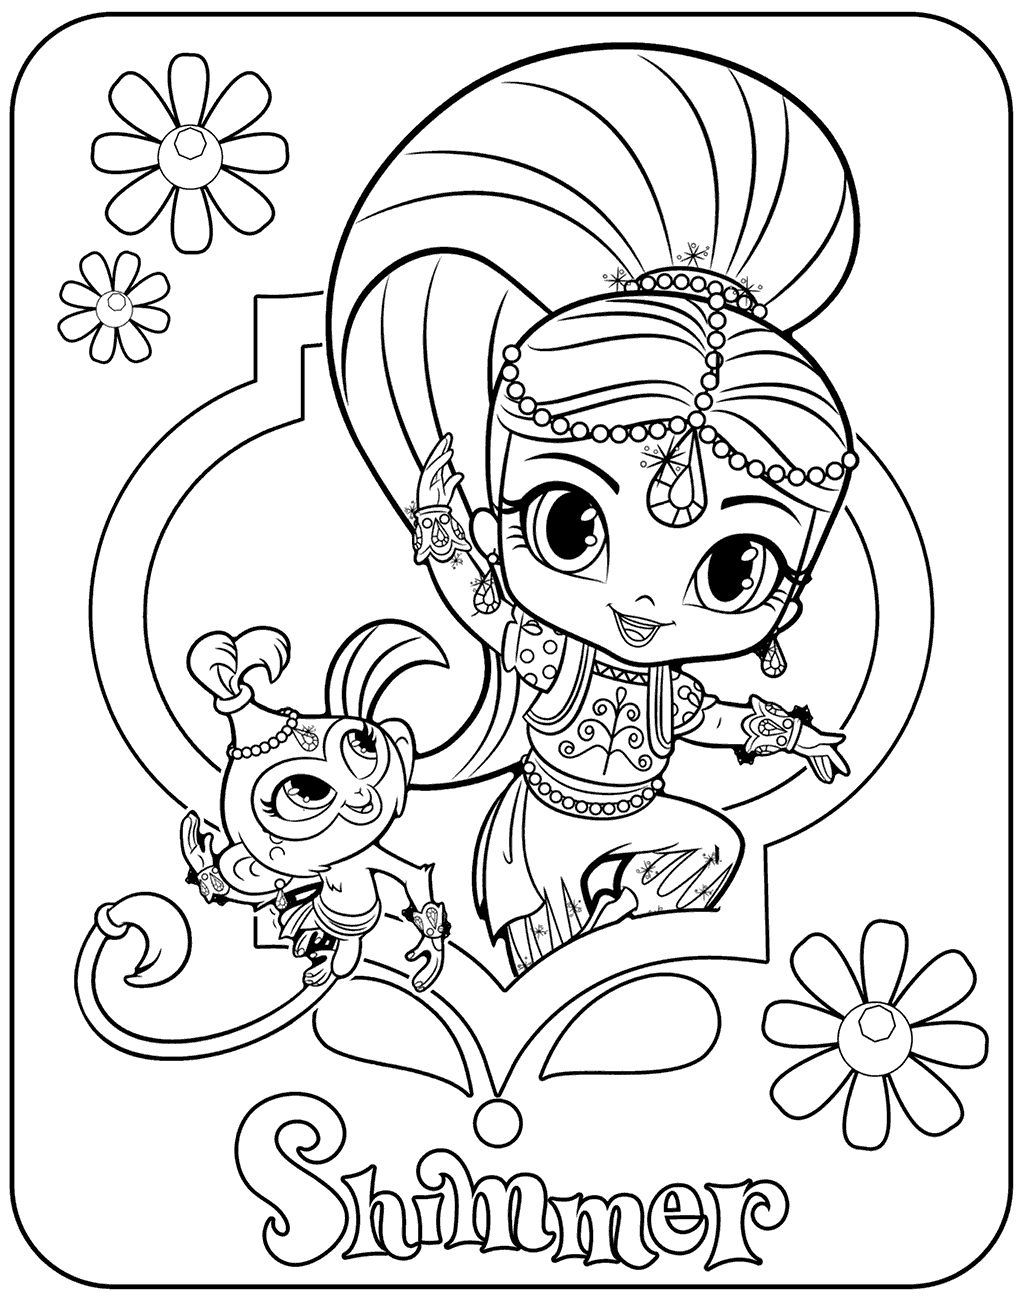 coloring pages shimmer and shine Shimmer and Shine Coloring Pages   Best Coloring Pages For Kids coloring pages shimmer and shine